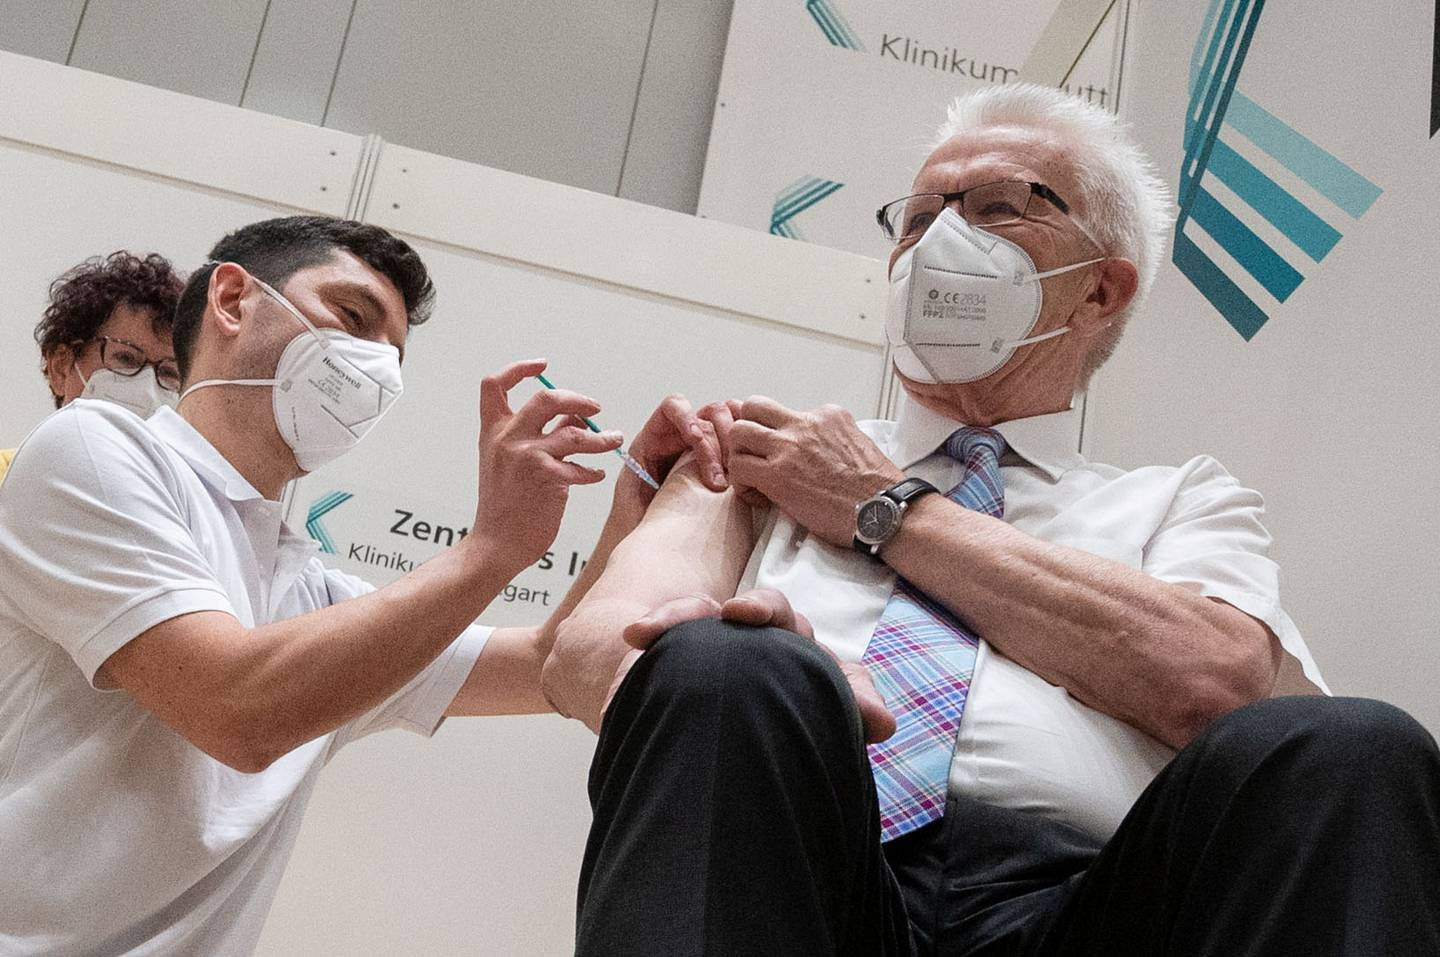 Winfried Kretschmann, Baden-Wuerttemberg federal Prime Minister of The Greens party receives his first AstraZeneca COVID-19 vaccination shot amid coronavirus pandemic in Stuttgart, Germany, March 19, 2021.   Marijan Murat/Pool via REUTERS